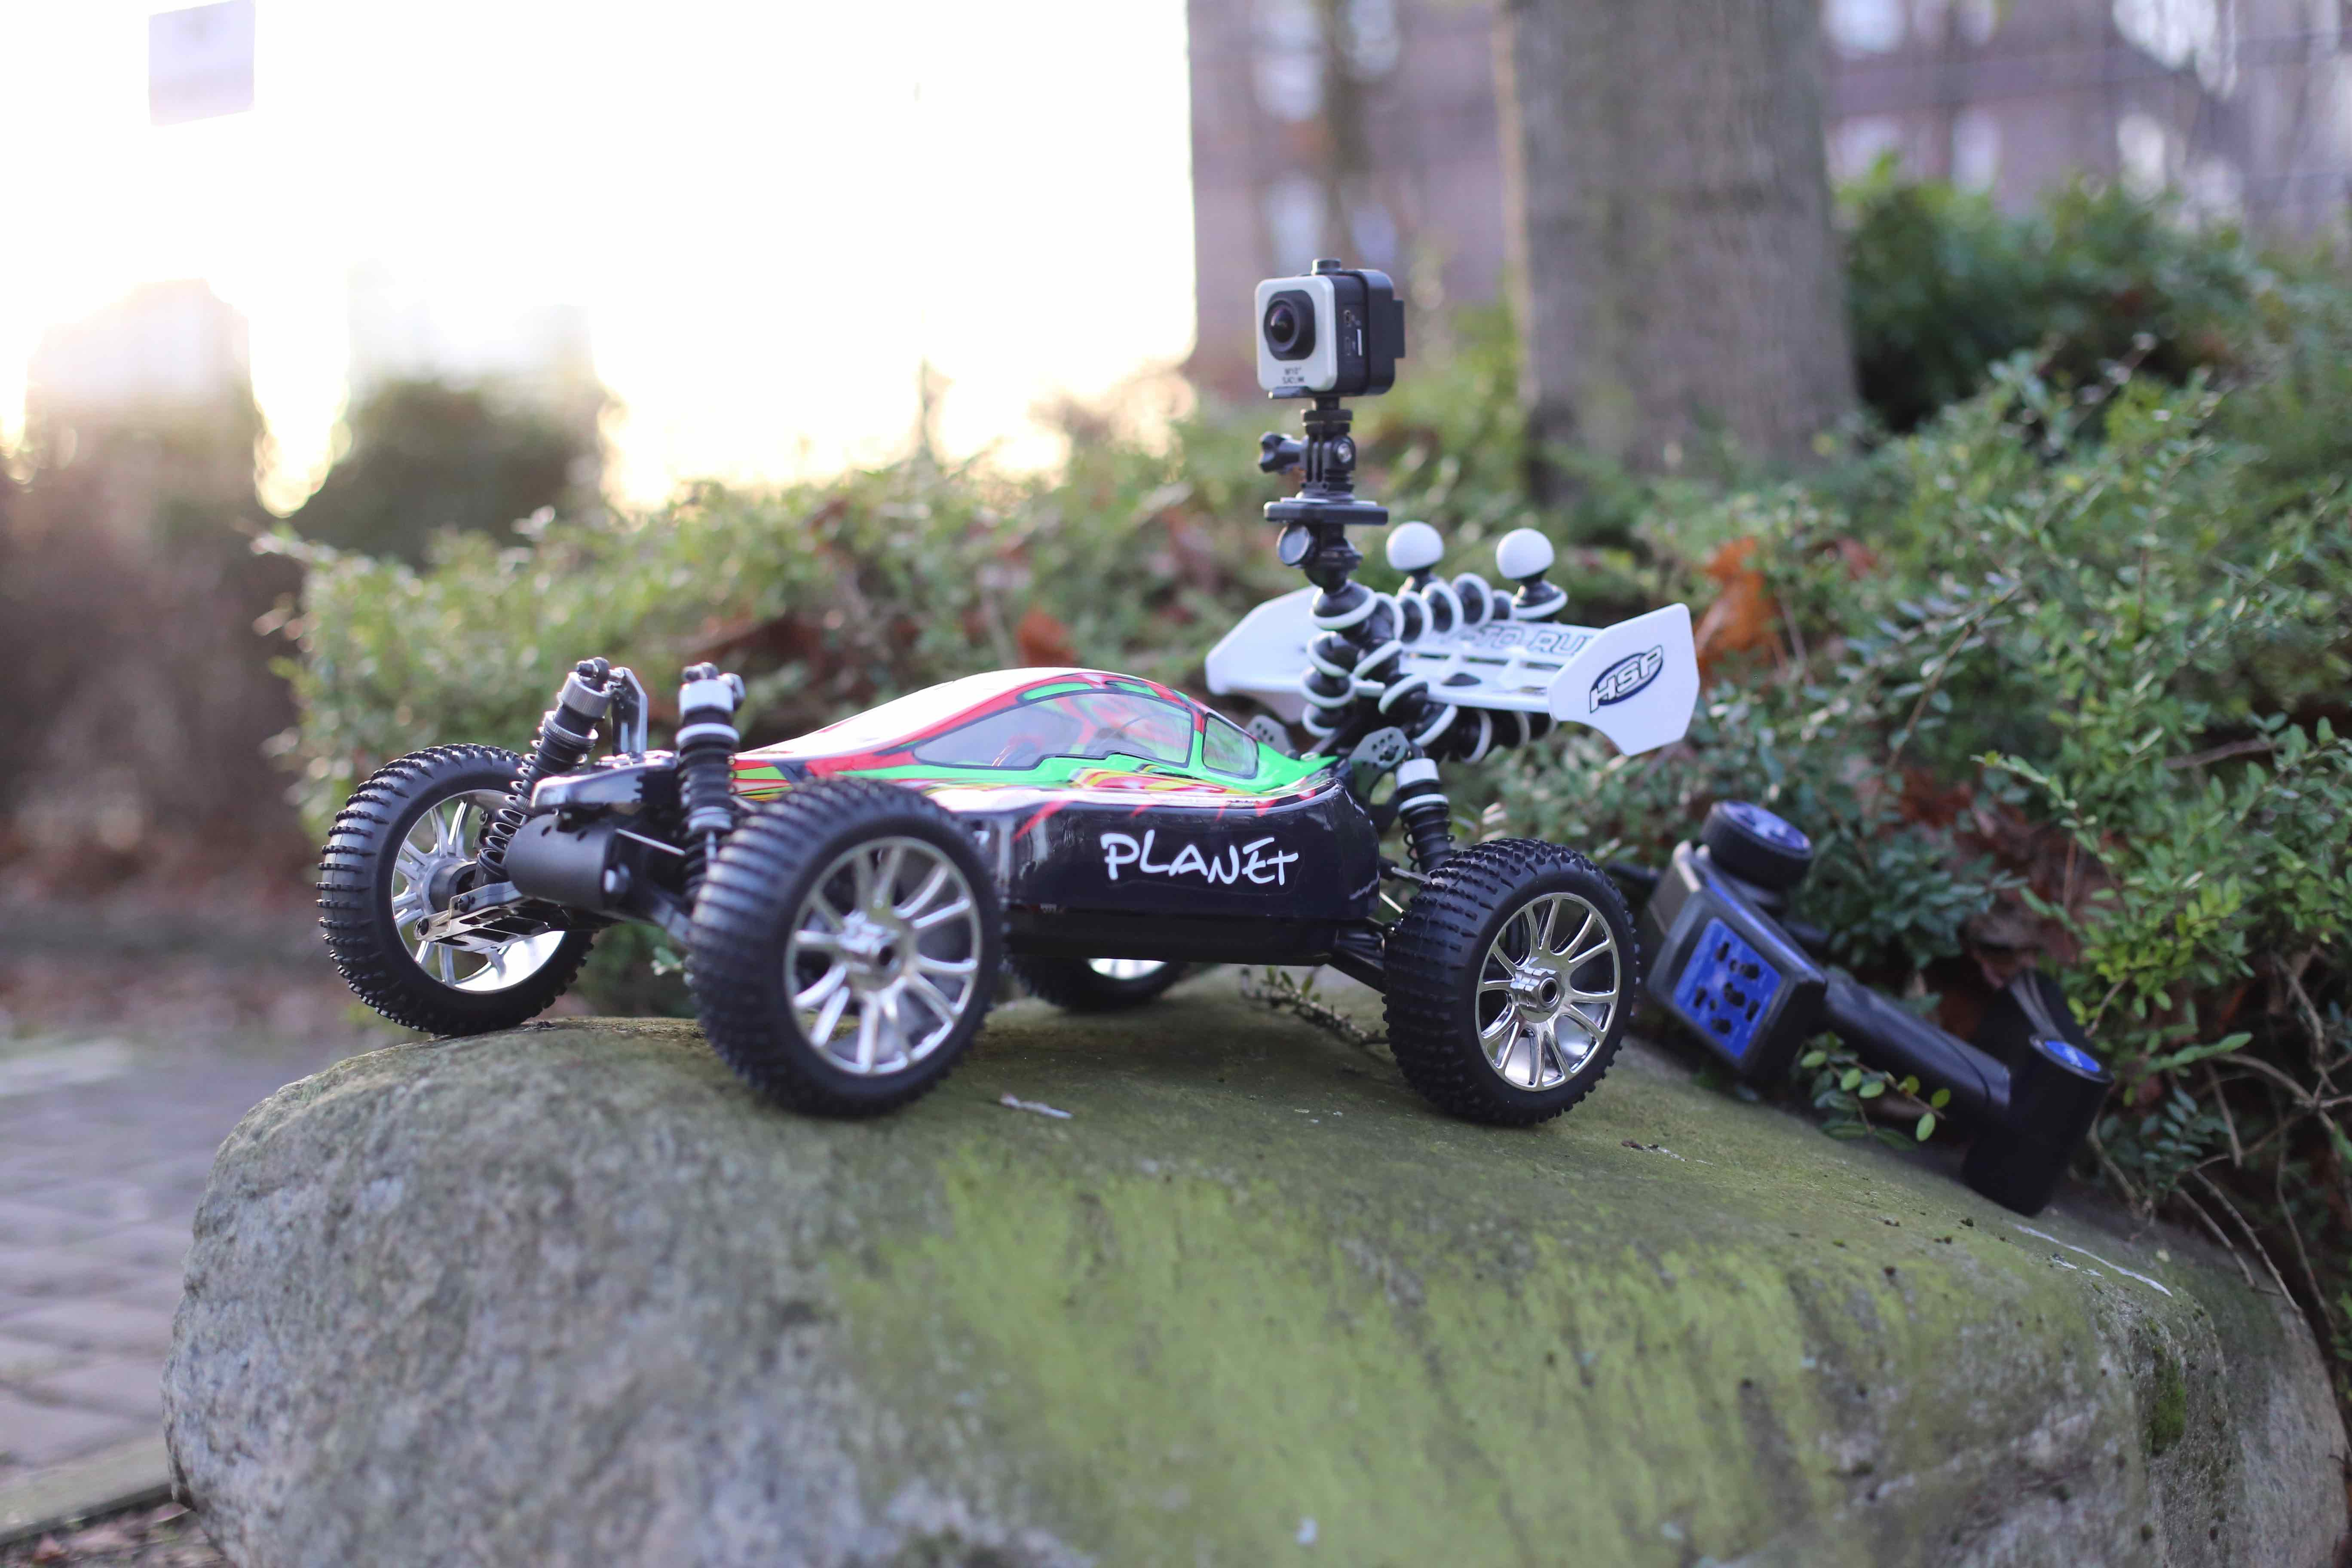 hsp planet brushless rc car im test metropolitan monkey. Black Bedroom Furniture Sets. Home Design Ideas